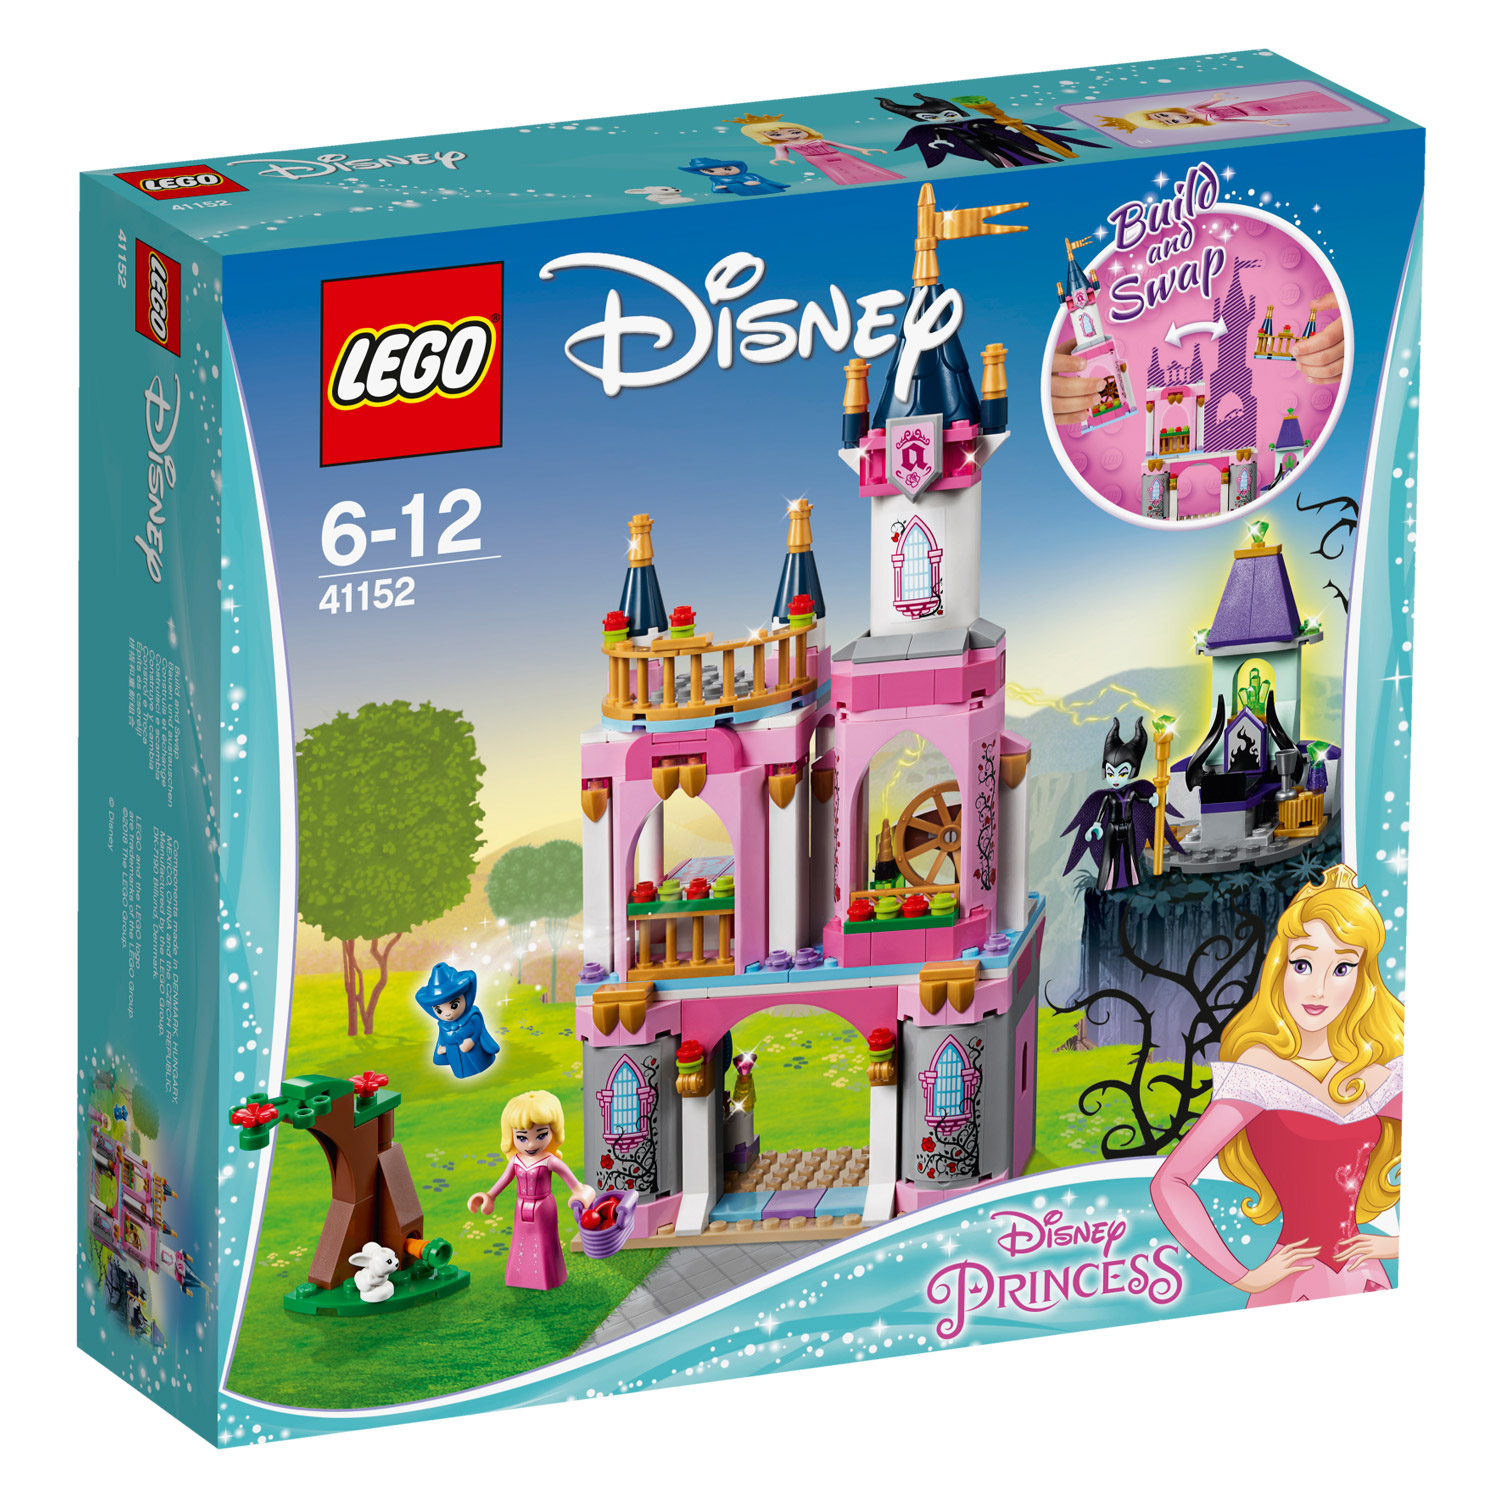 Disney 41152 41152 Disney Princess Lego® Lego® Princess 41152 Lego® Lego® Disney Princess 41152 SUzGqMVp